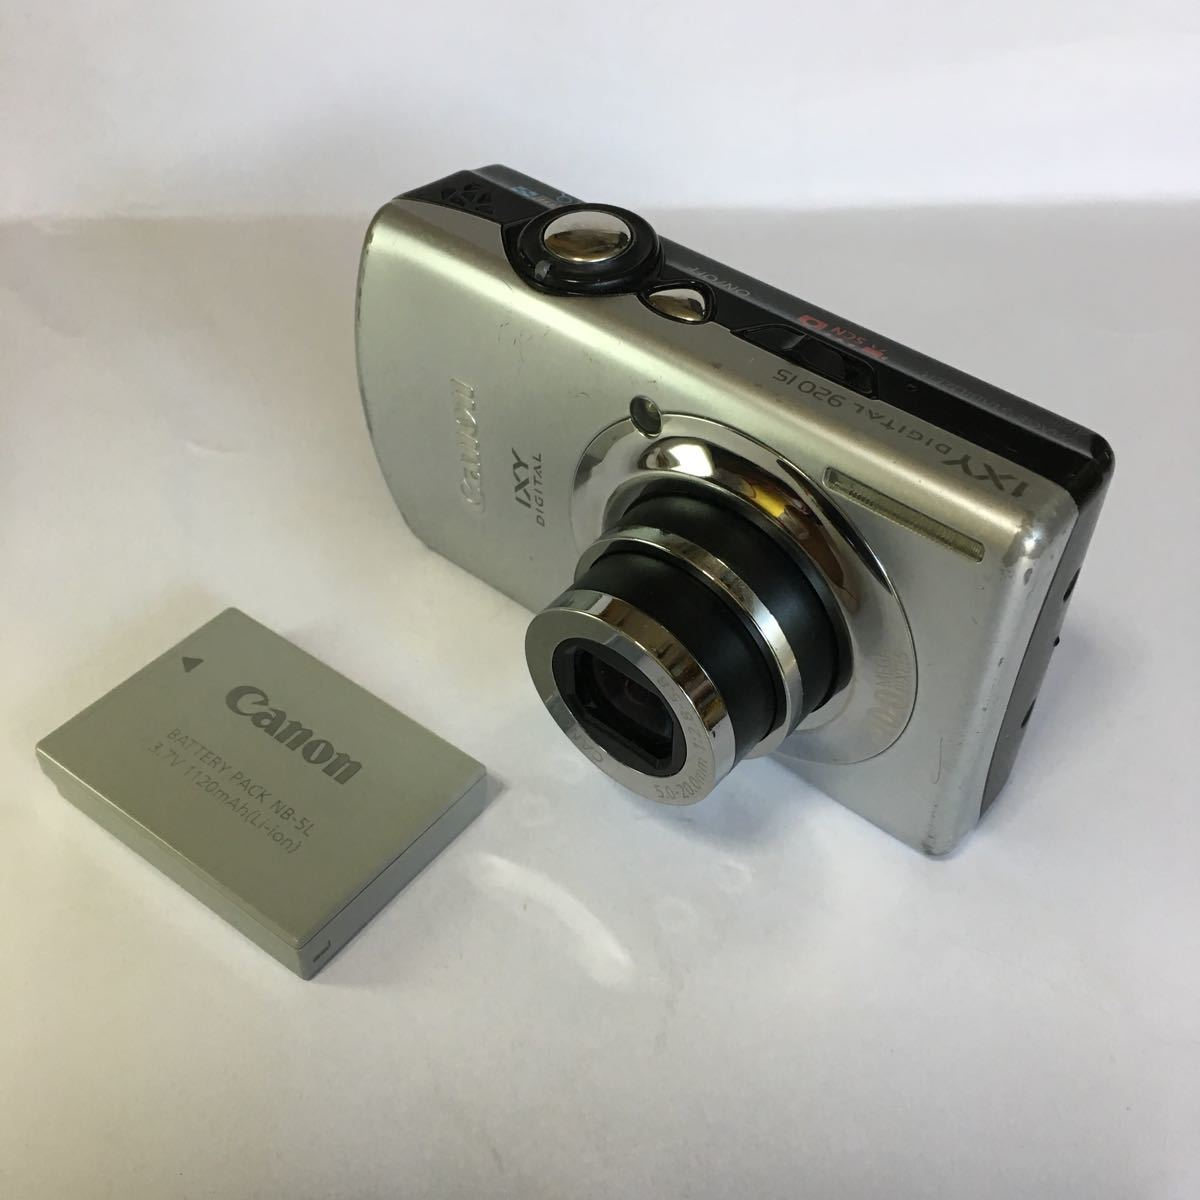 Canon IXY 920is (動作確認済み)